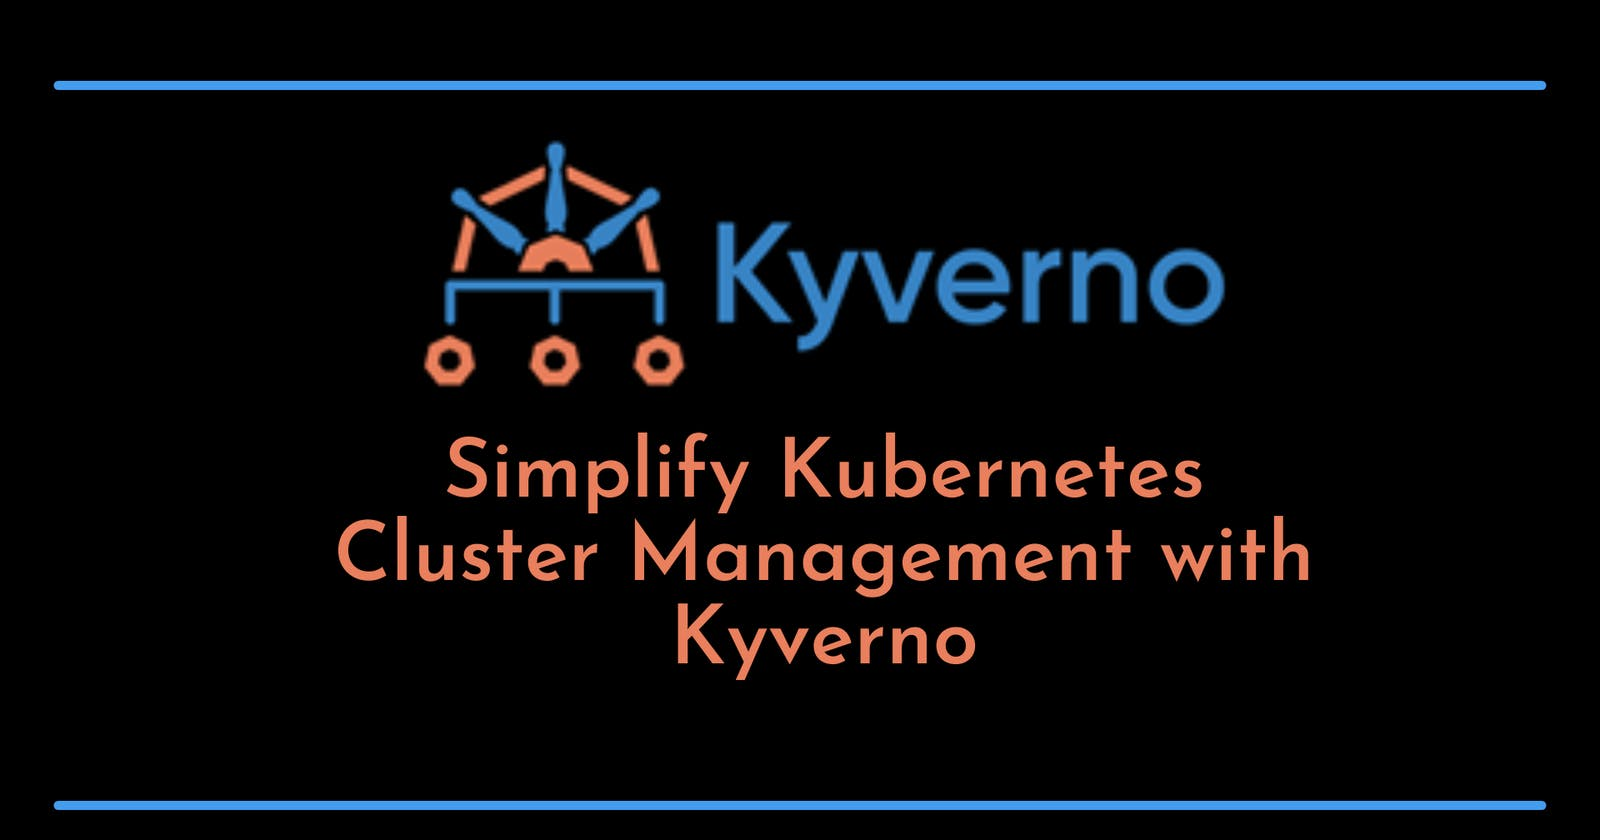 Simplify Kubernetes Cluster Management with Kyverno